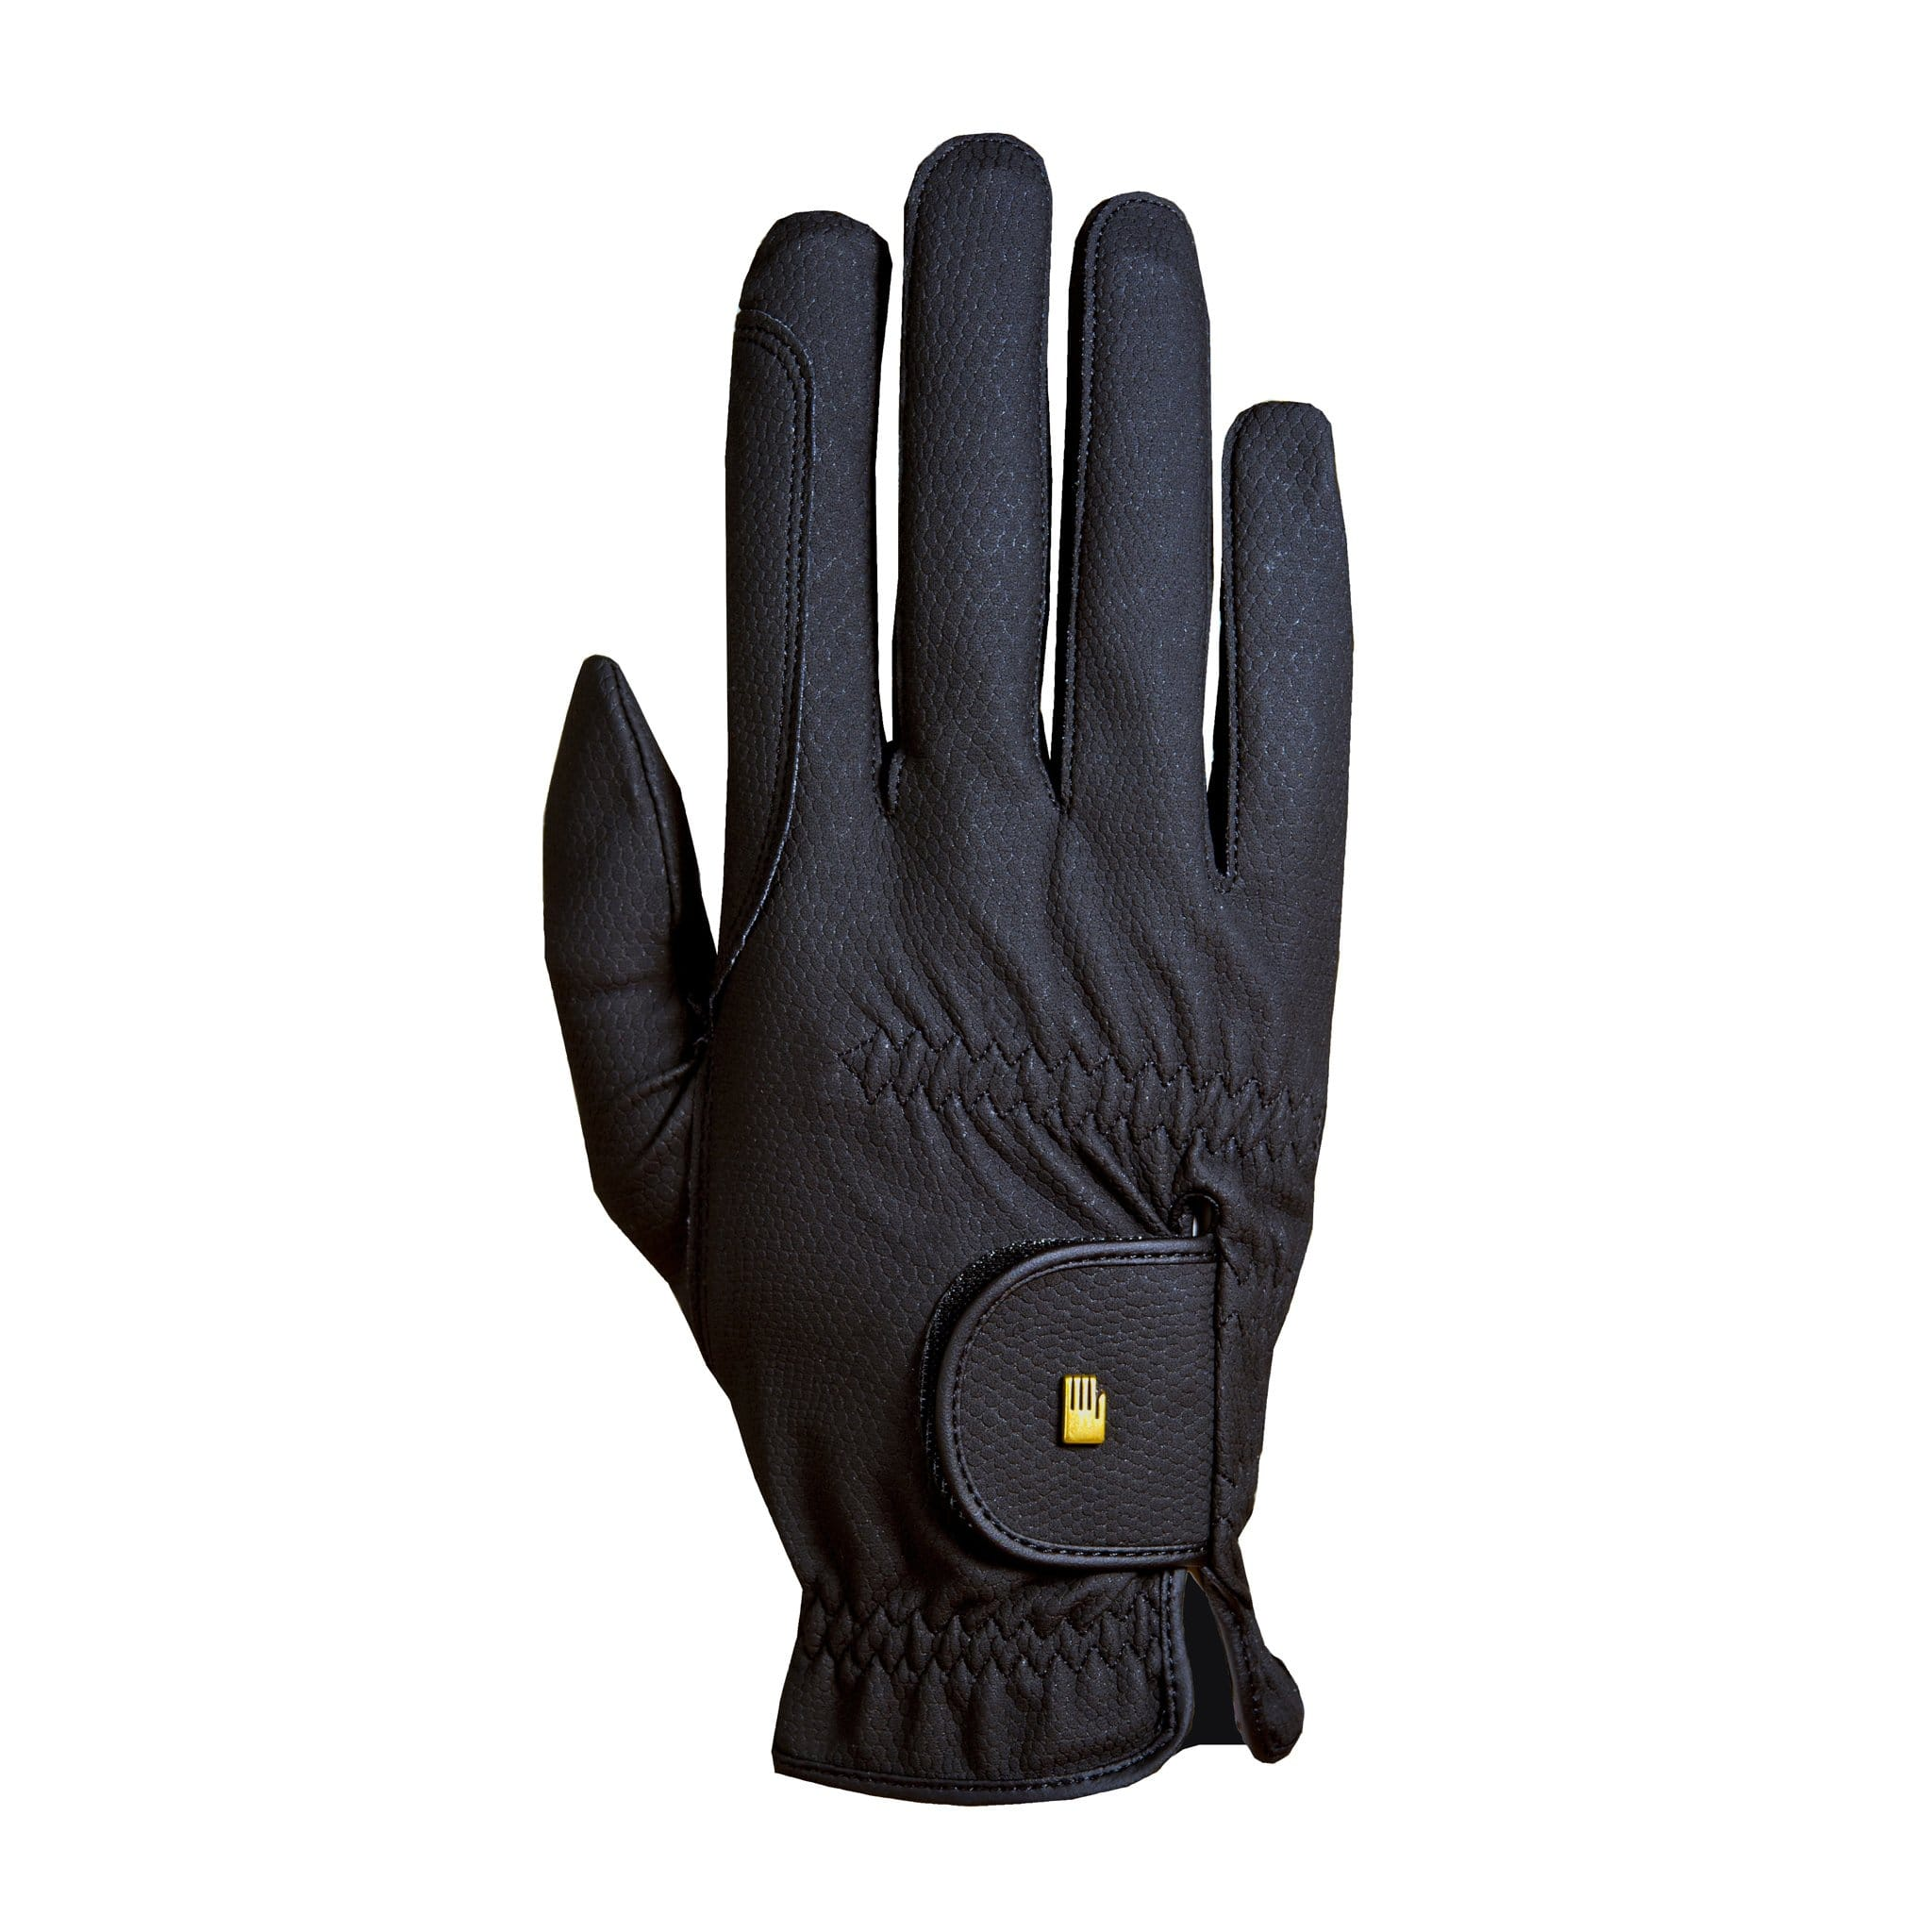 Roeckl Chester Children's Gloves Black 3305-207-000